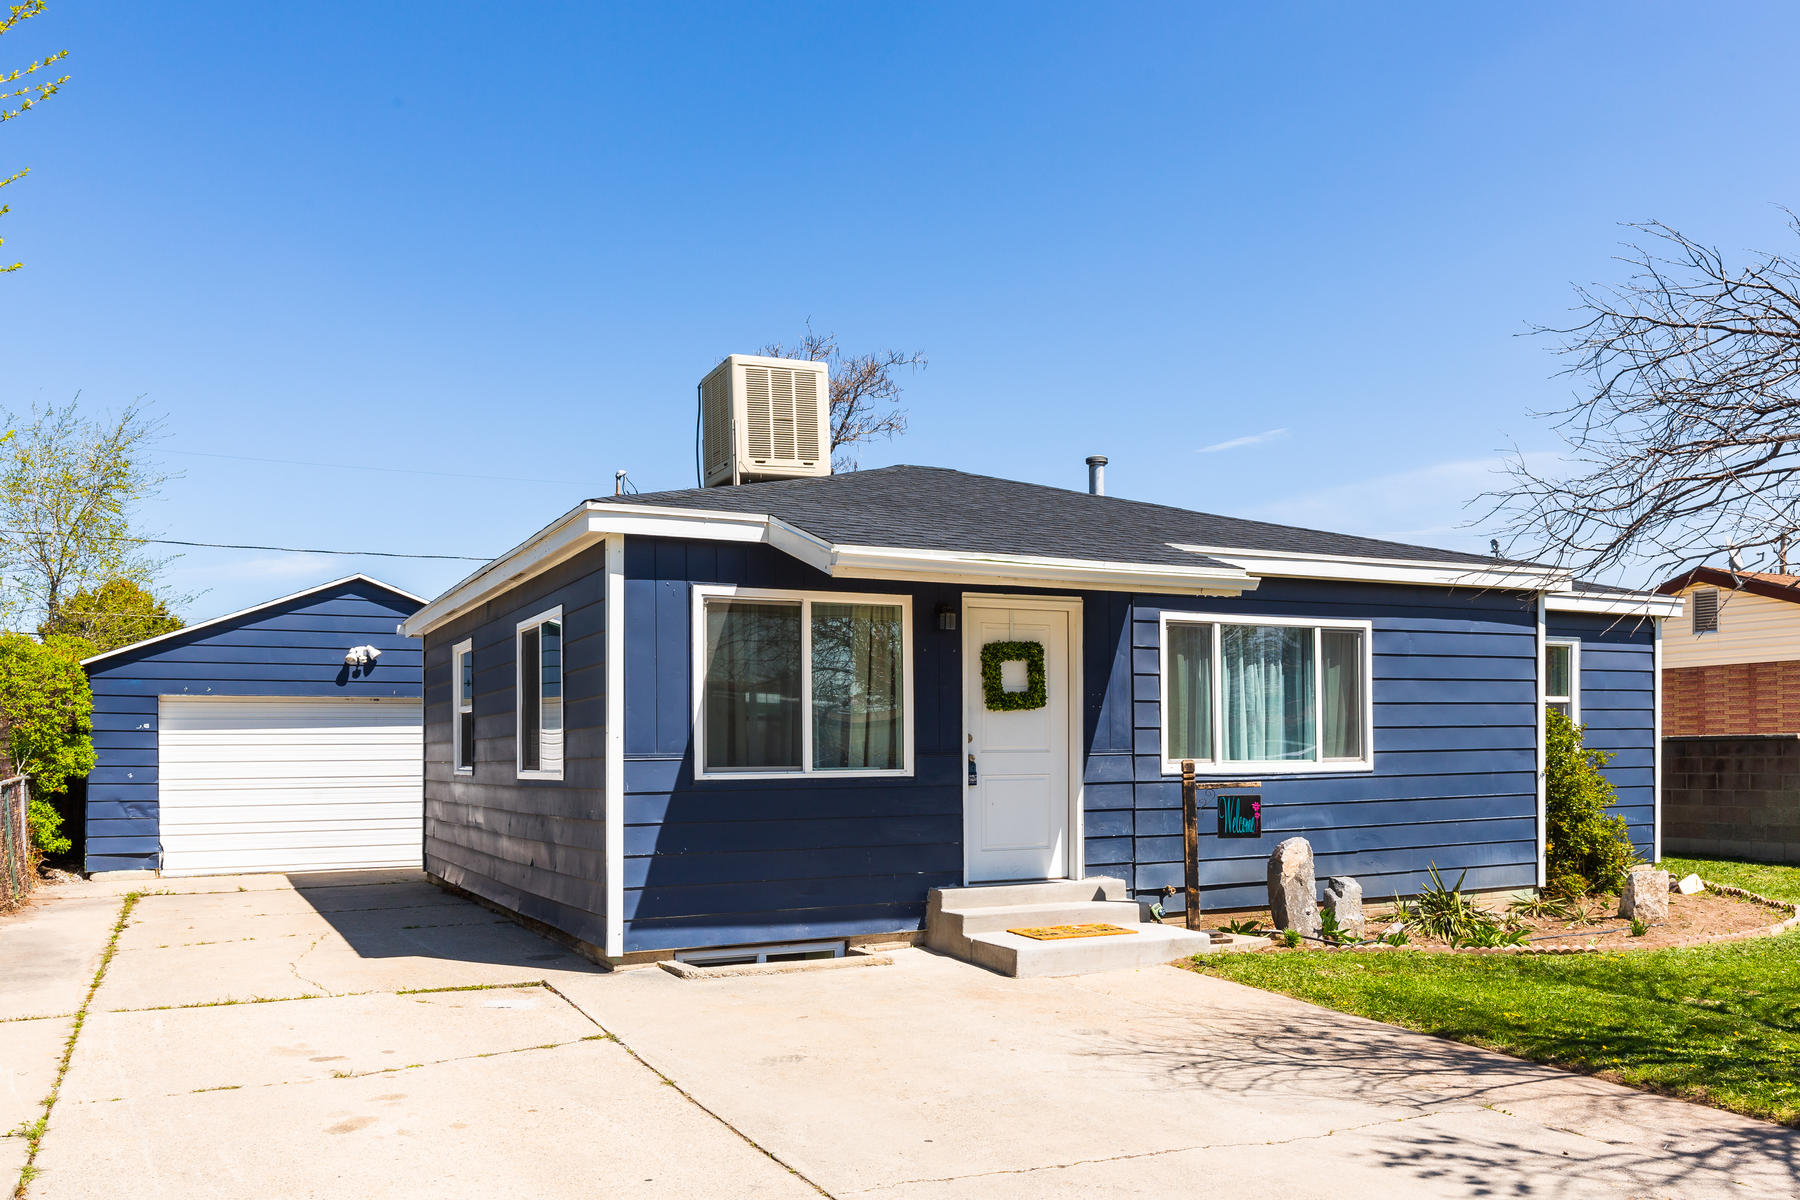 Single Family Homes for Sale at 100% Remodeled Rambler 4188 W 5740 S Kearns, Utah 84118 United States